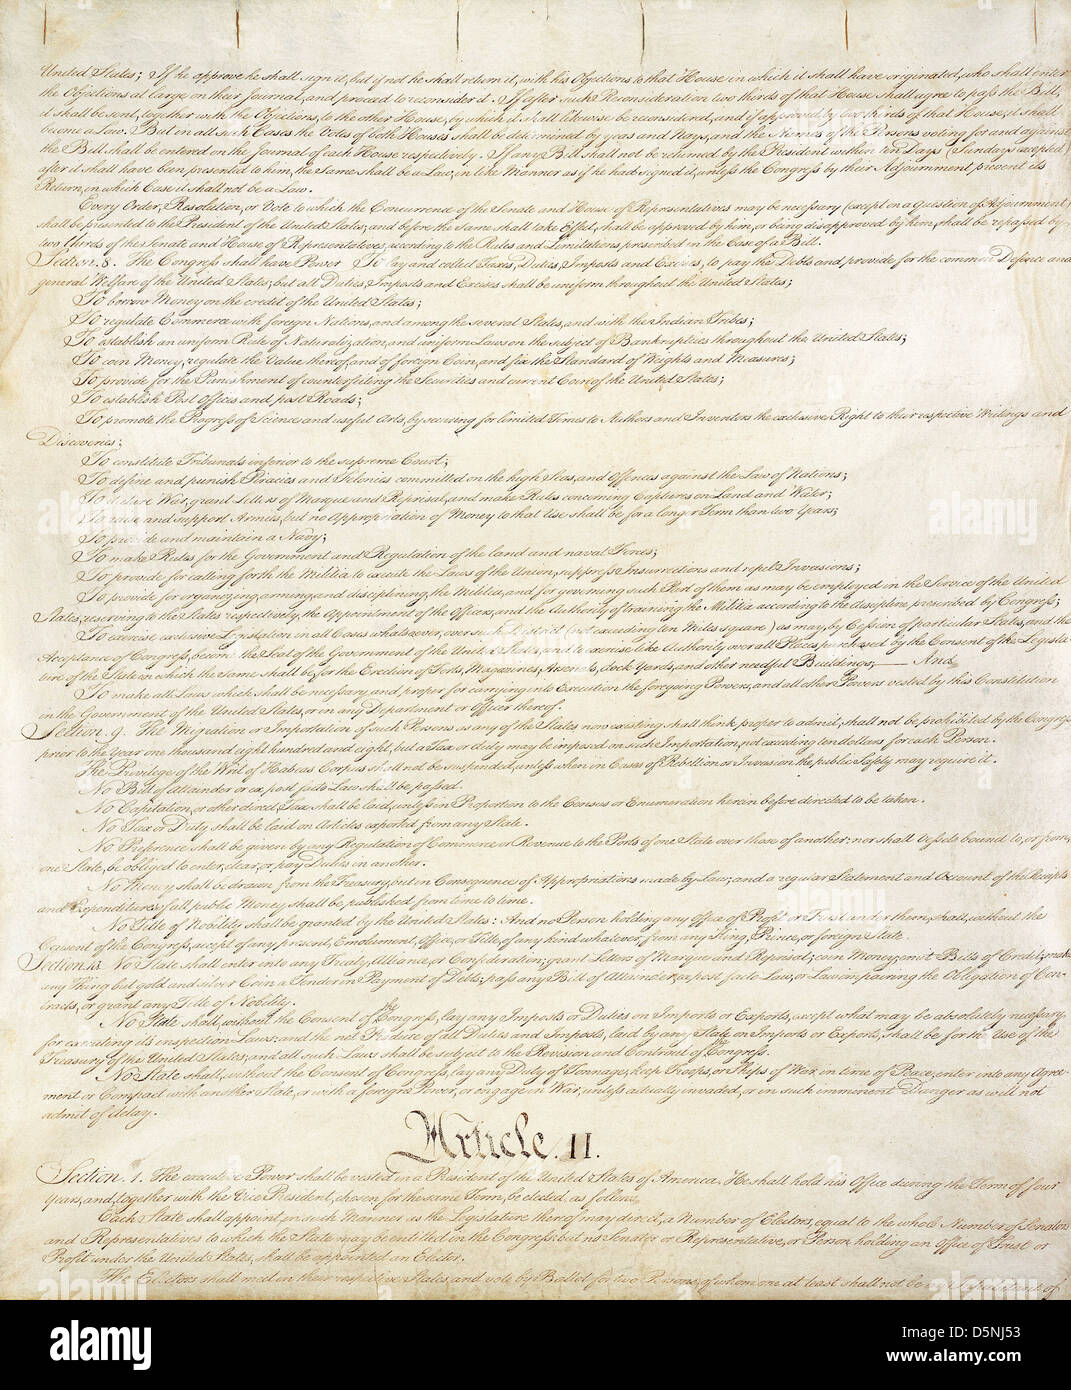 second page of constitution of the united states national archives and records administration washington dc